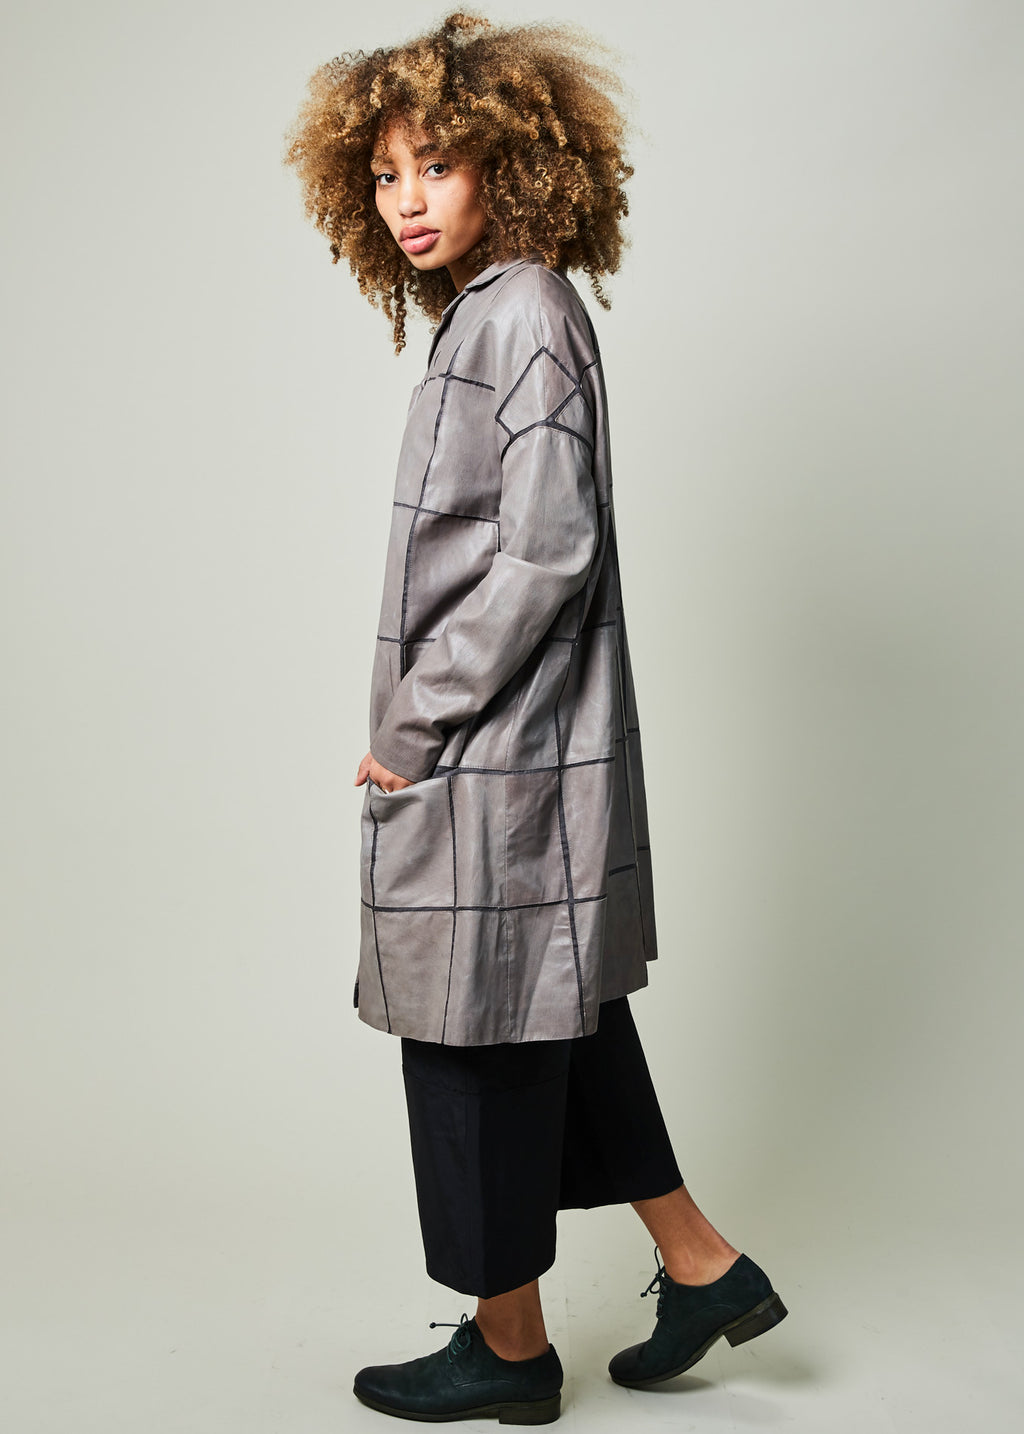 Limbo Leather Patch Coat